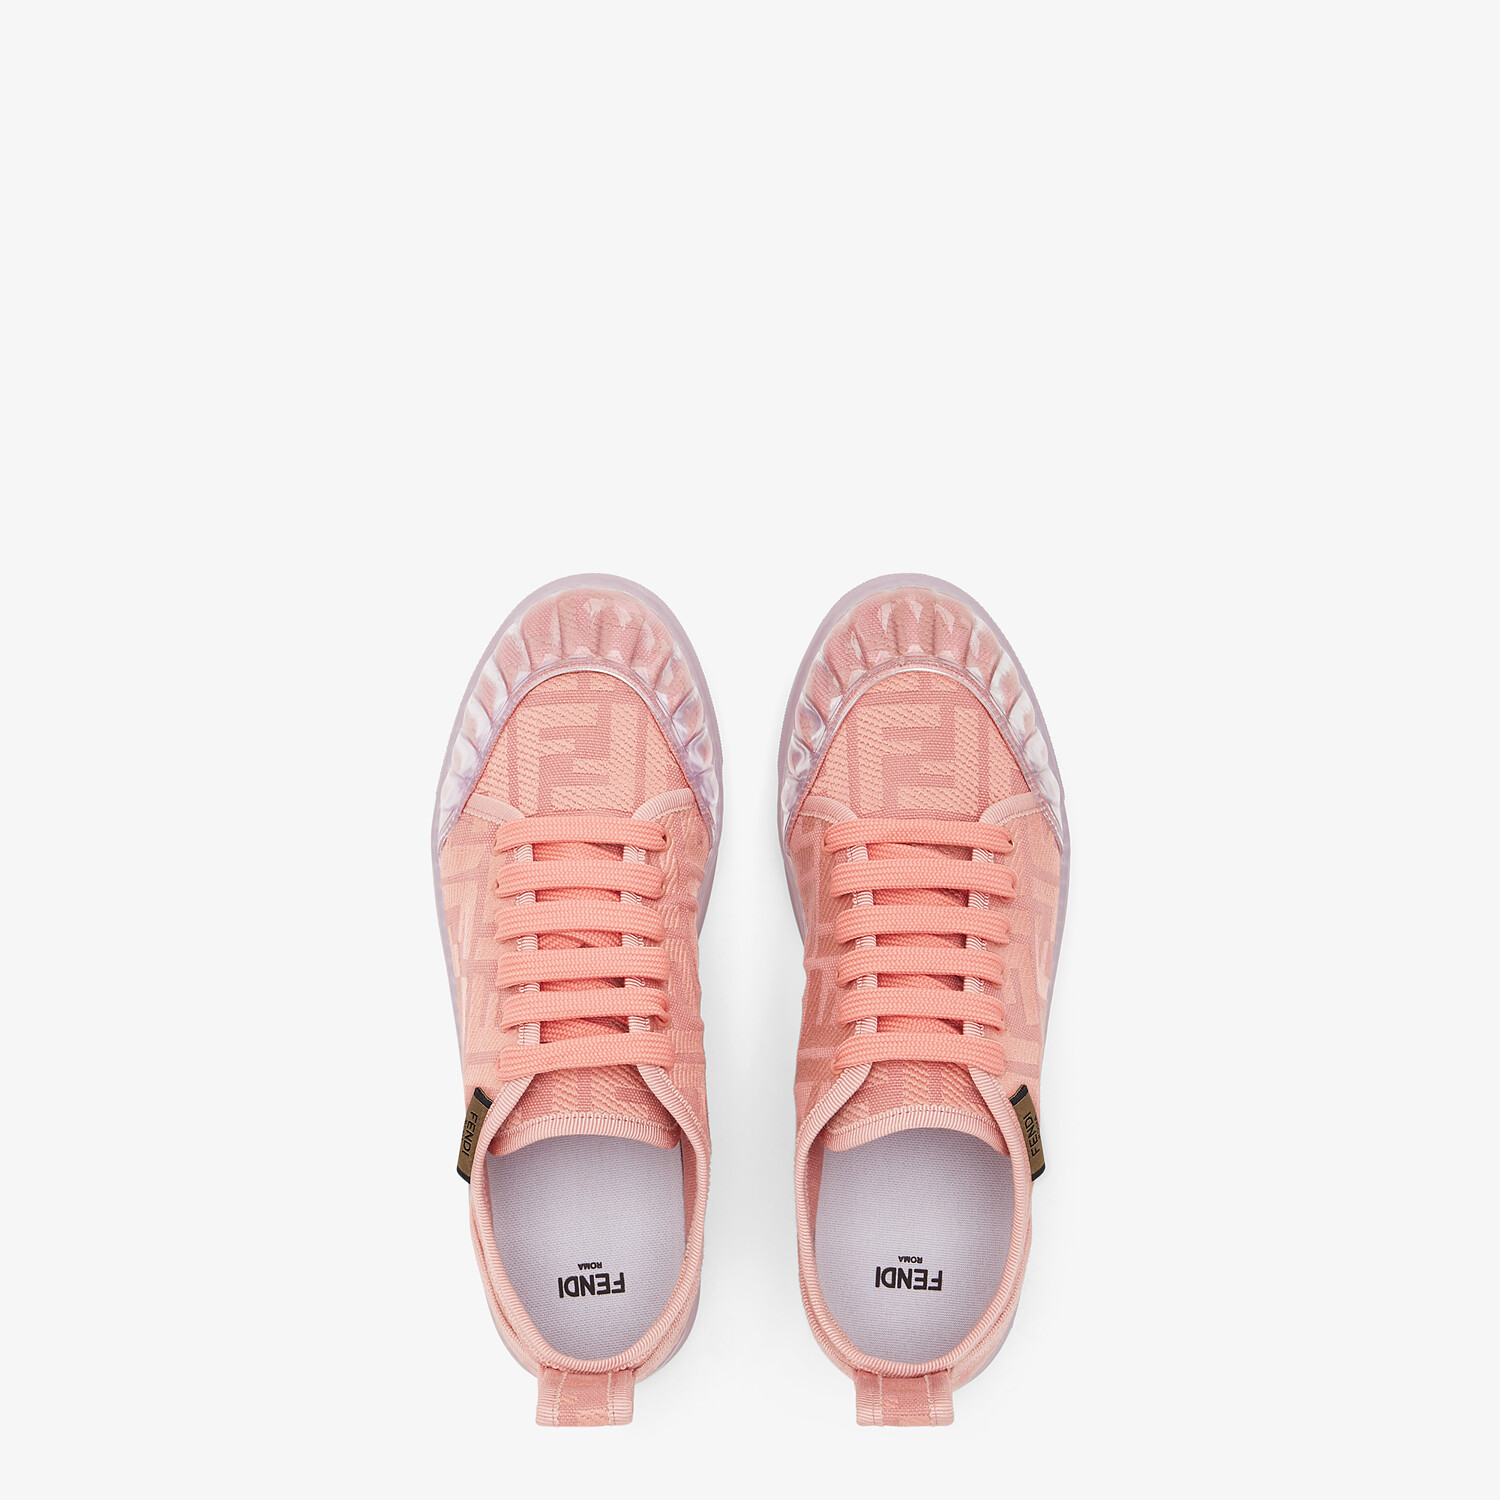 FENDI SNEAKERS - Pink canvas low tops - view 4 detail